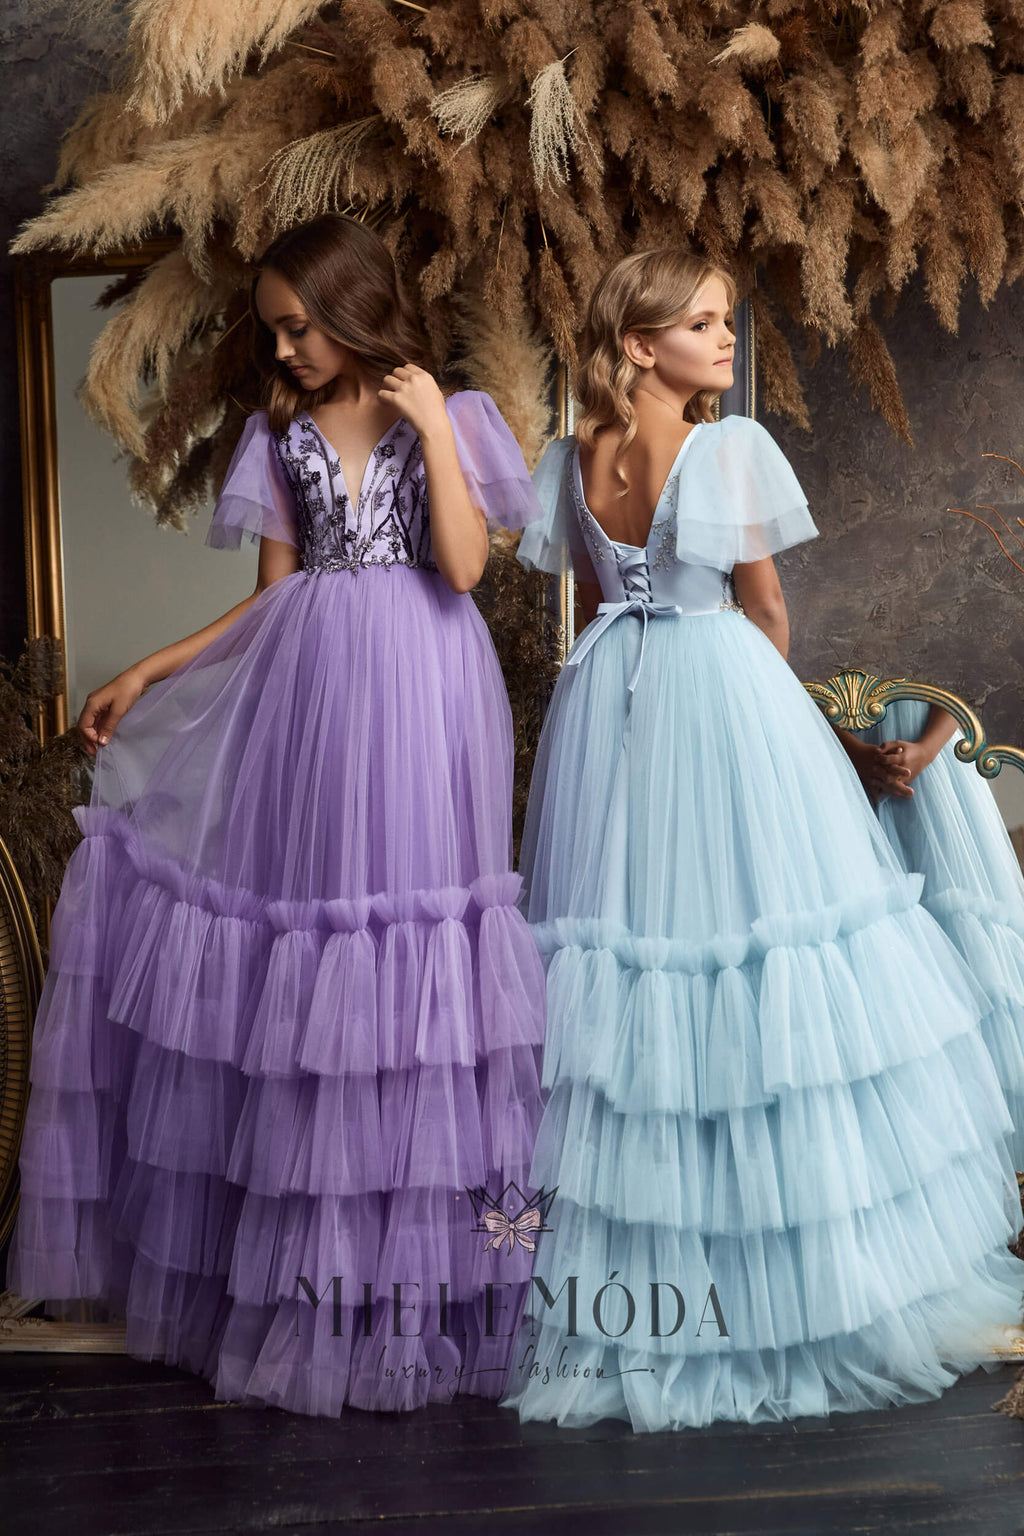 Chiara Princess Dress in Lilac